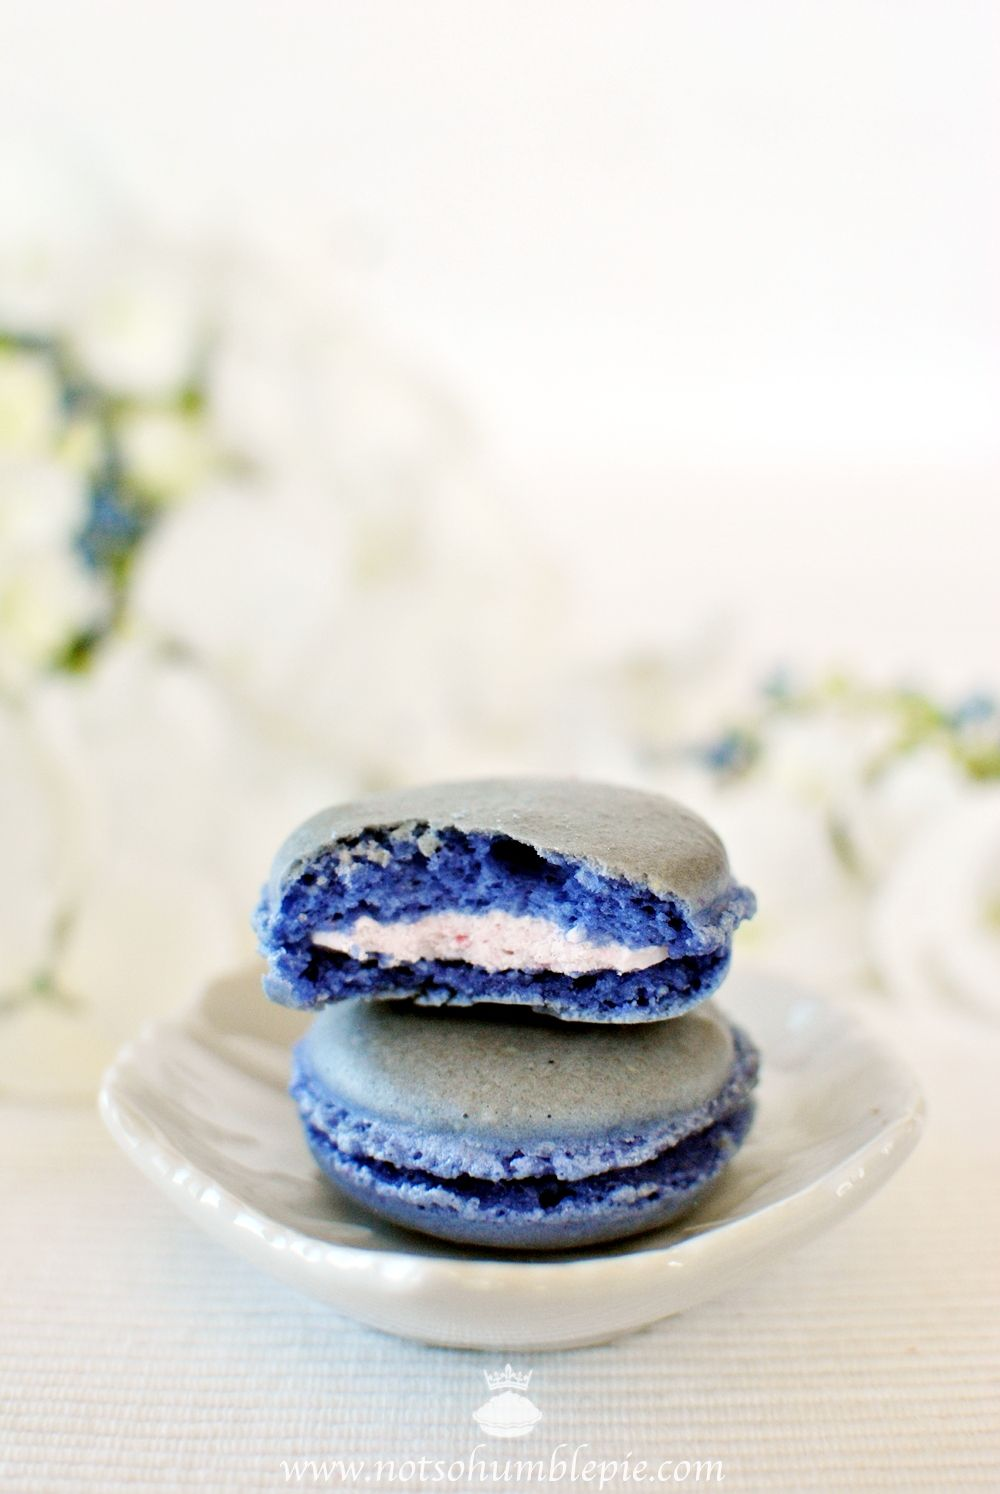 Not So Humble Pie: Macaron Troubleshooting & A New Recipe